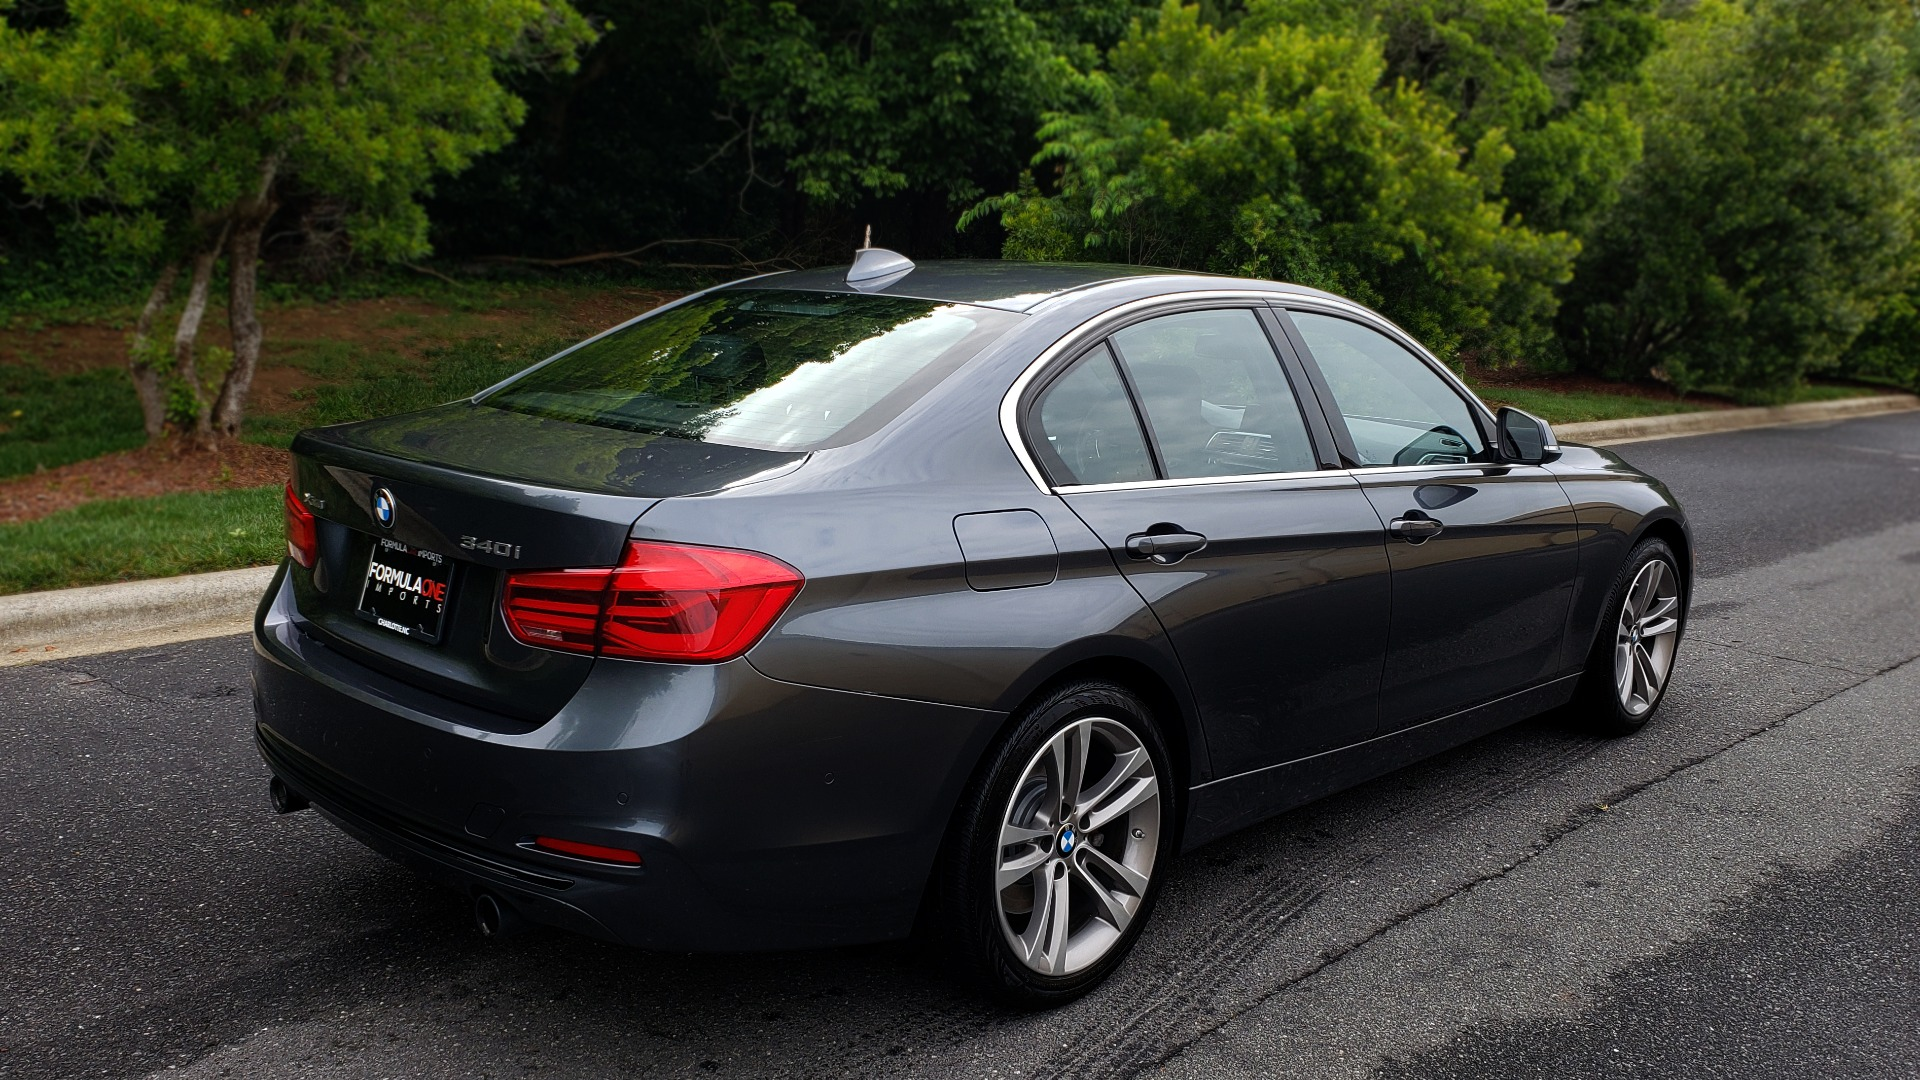 Used 2017 BMW 3 SERIES 340I XDRIVE SPORT / DRVR ASST PLUS / NAV / CLD WTHR / PARK ASST for sale Sold at Formula Imports in Charlotte NC 28227 6